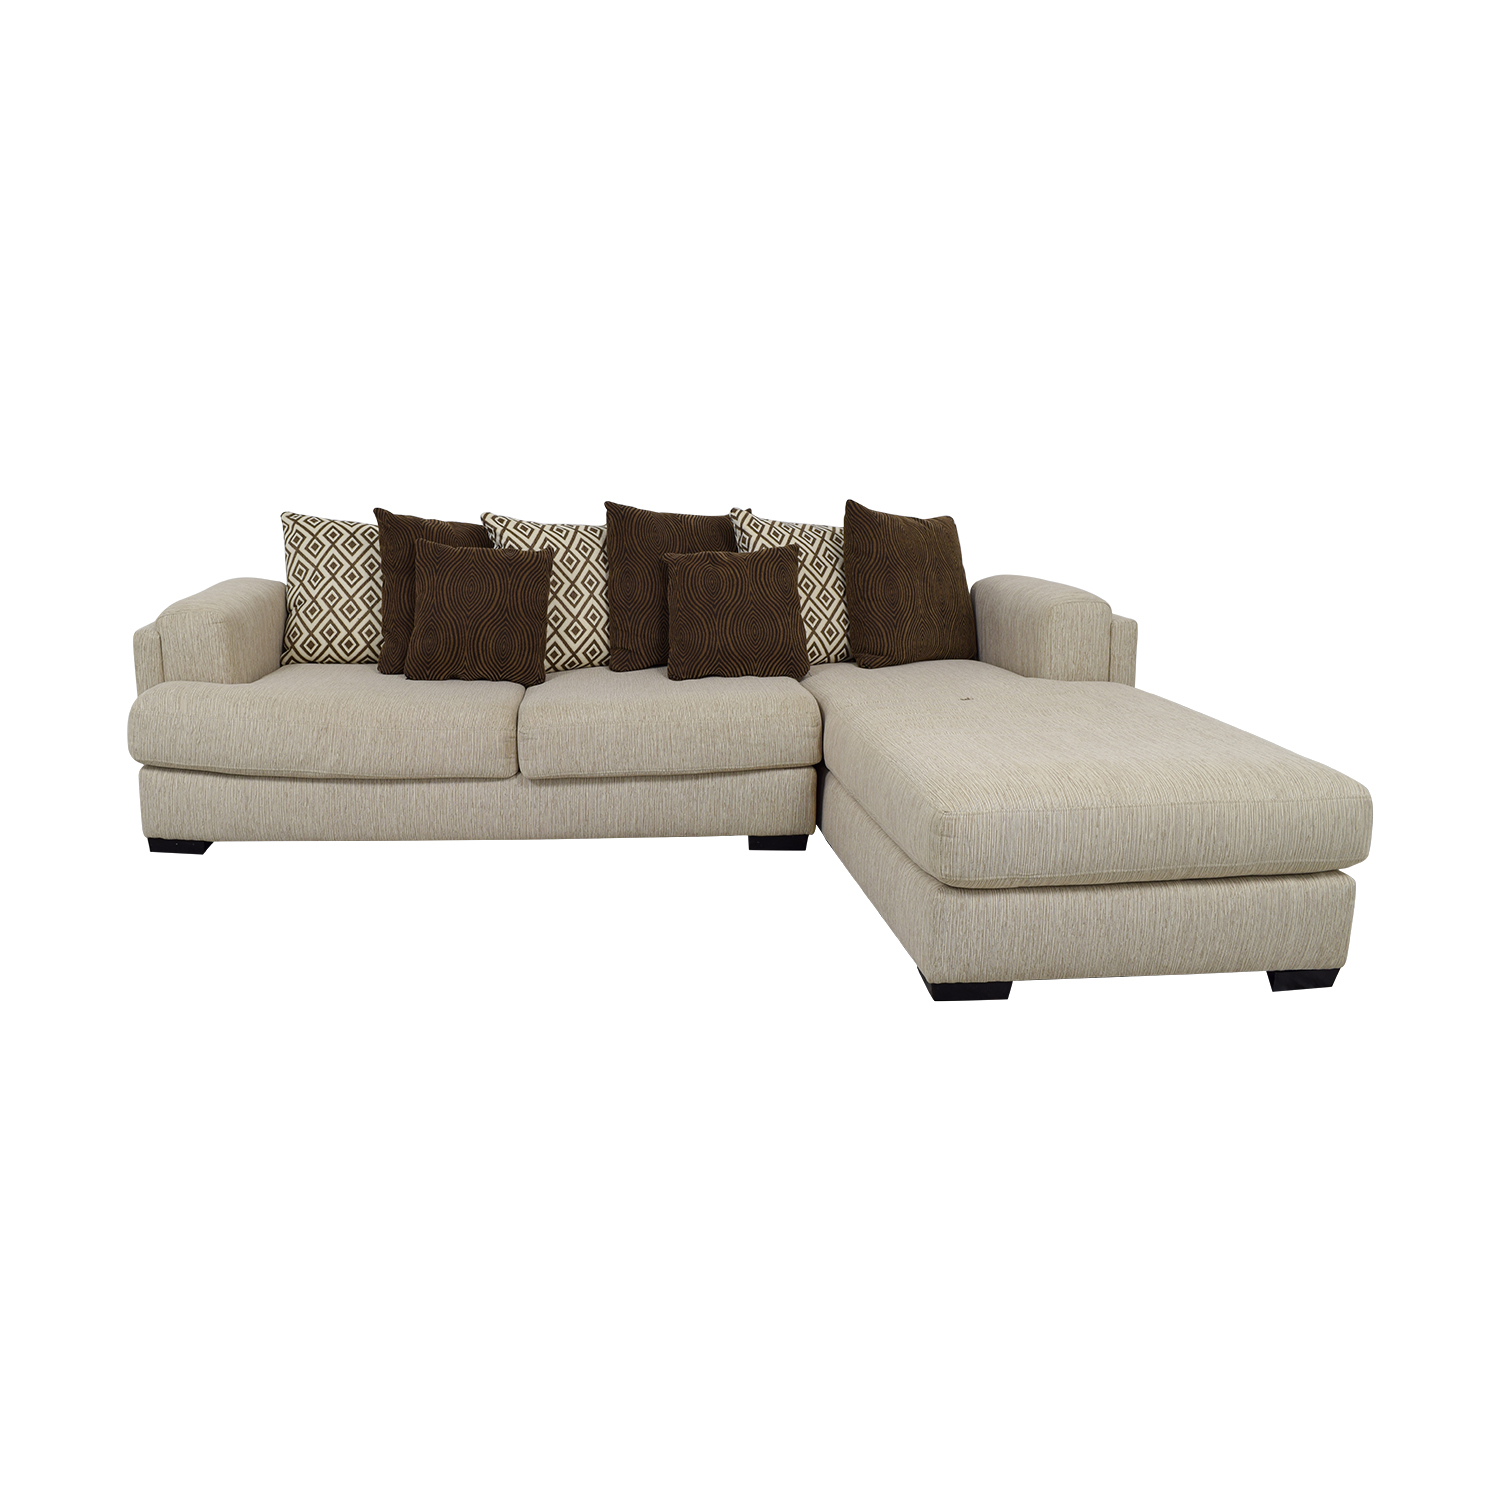 Raymour & Flanigan Raymour & Flanigan Urbanity Beige Chaise Sectional nj